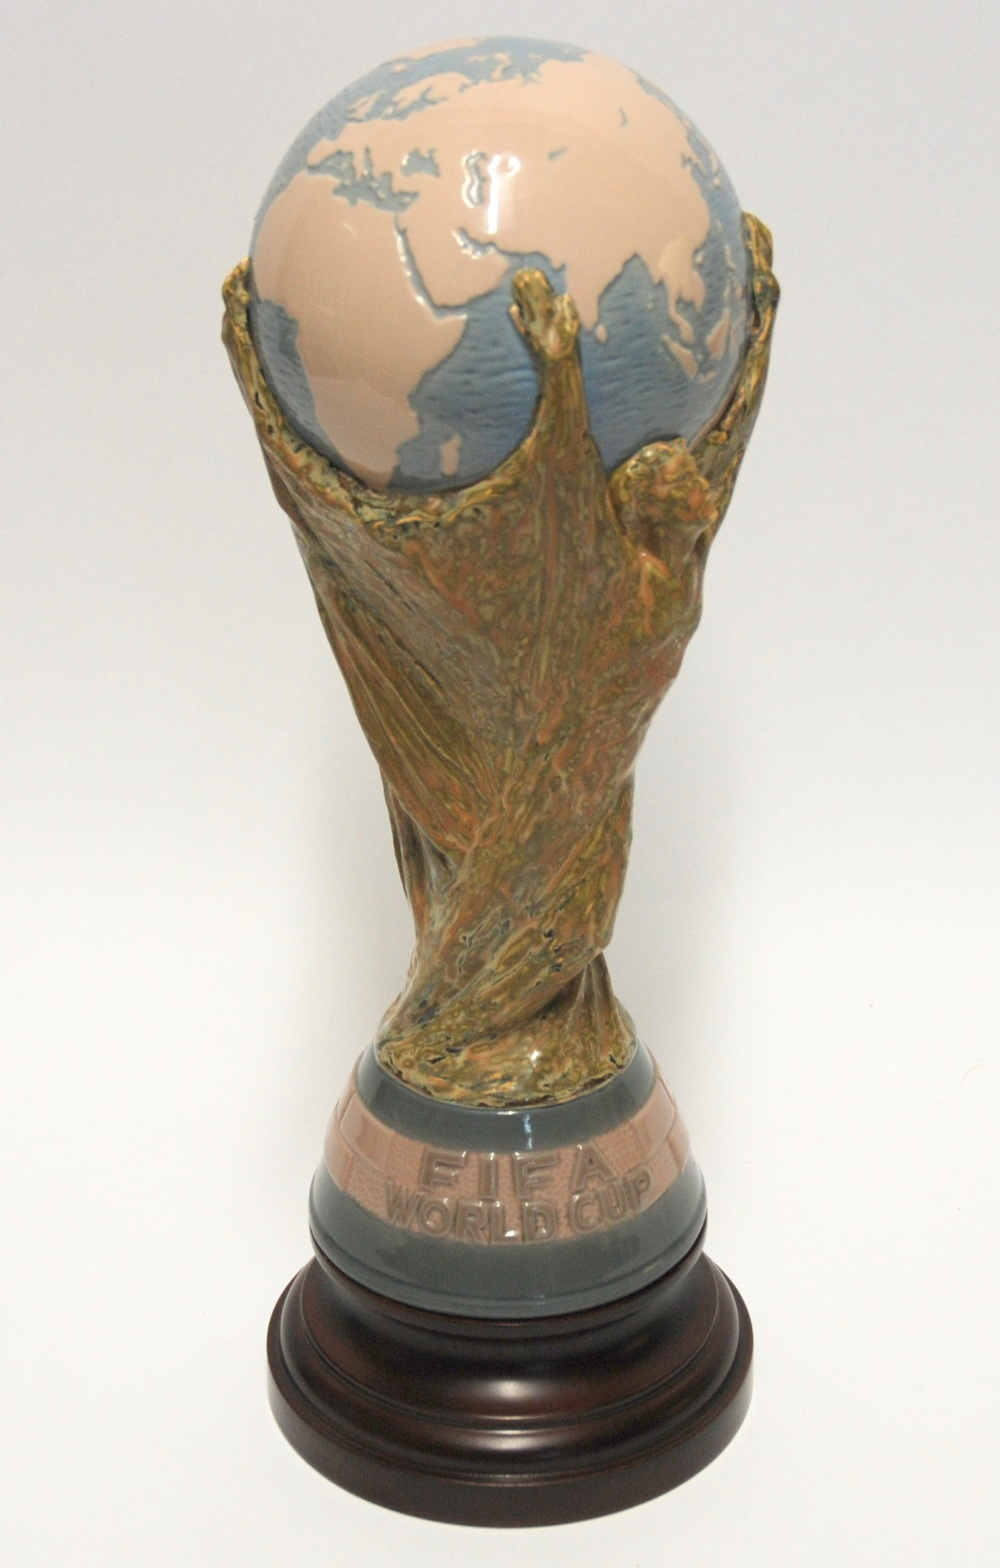 Lot 256 - A Lladro World Cup the base inscribed FIFA World Cup, with printed and impressed factory marks,